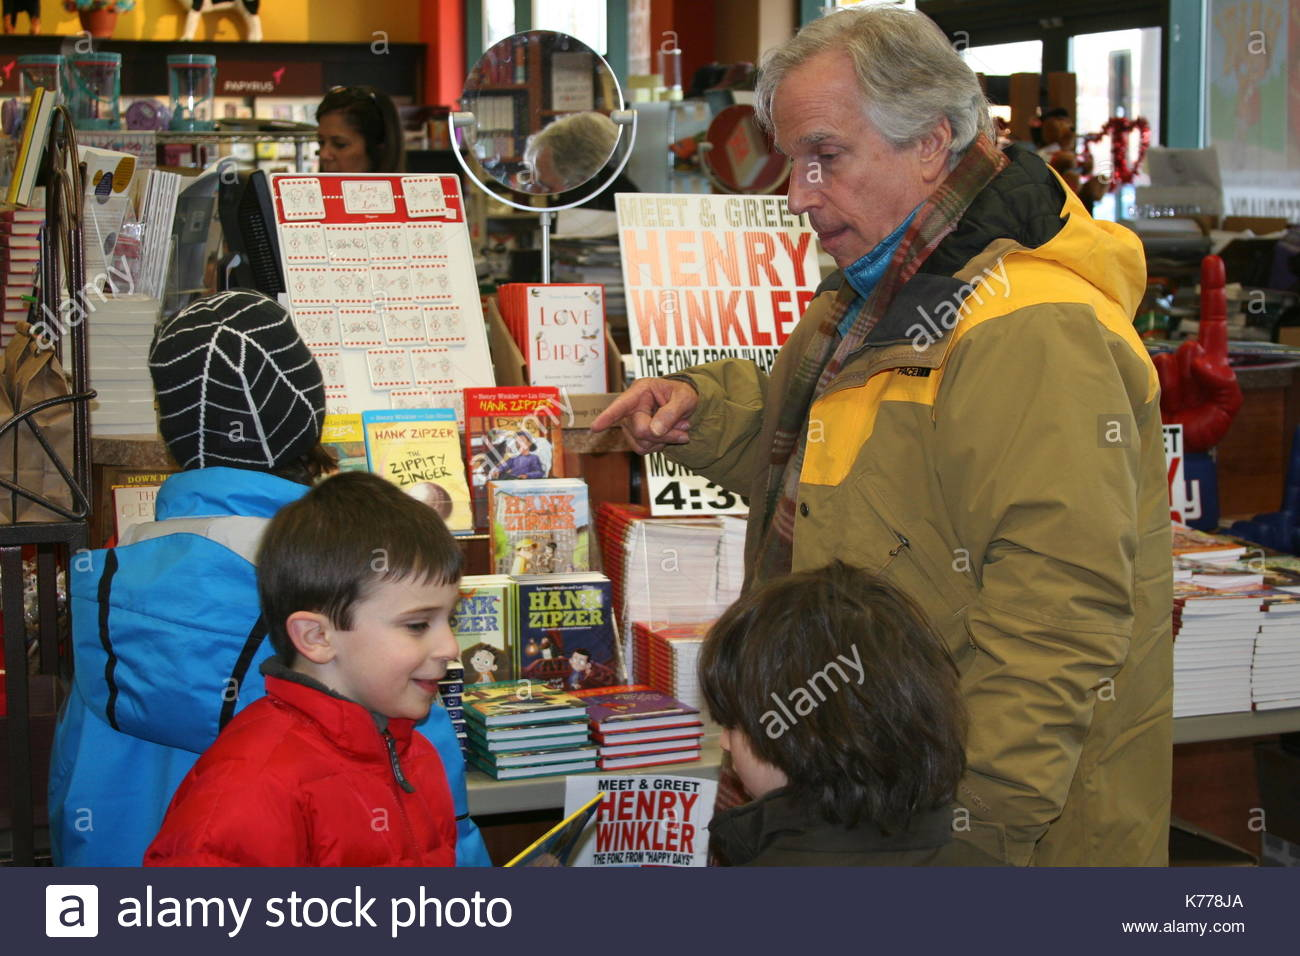 Henry winkler henry winkler actor producer director and author henry winkler actor producer director and author stopped in at books and greetings in northvale nj to sign the latest in his series of hank zipzer books m4hsunfo